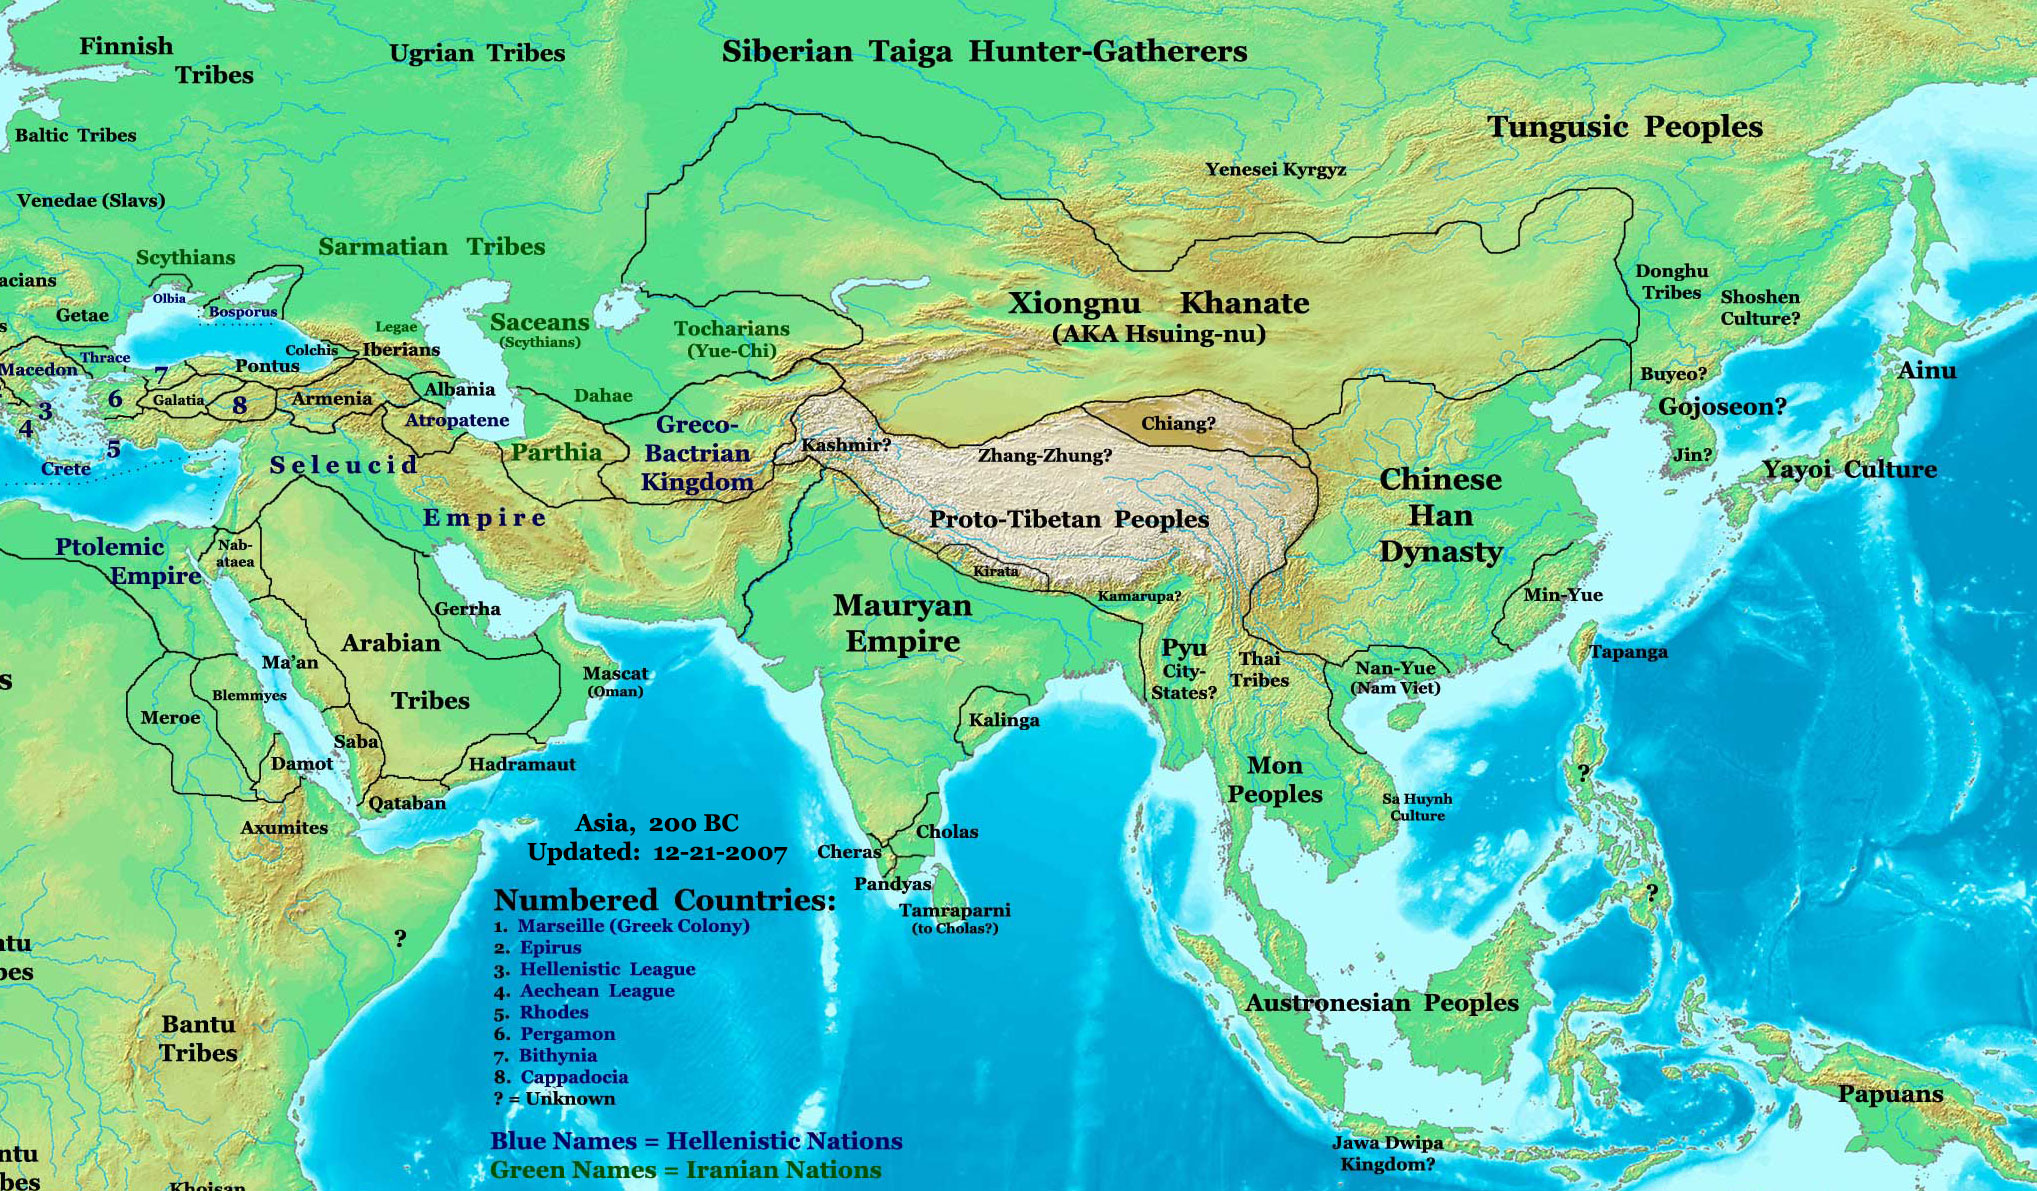 https://i0.wp.com/upload.wikimedia.org/wikipedia/commons/0/04/Asia_200bc.jpg